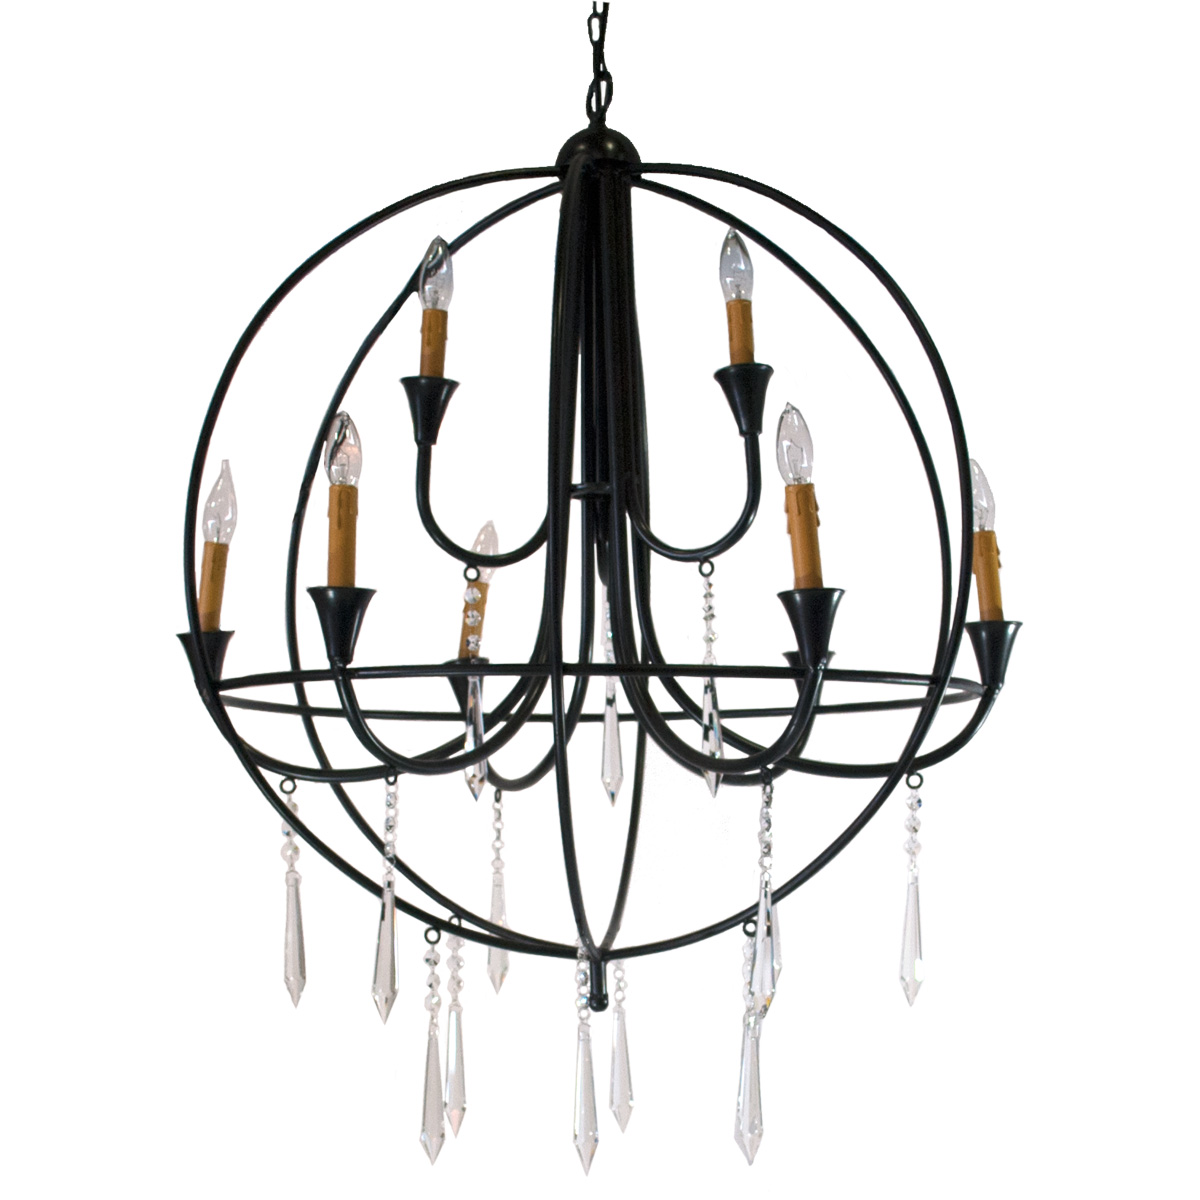 Wrought iron orb chandelier celebrations party rentals wrought iron orb chandelier arubaitofo Images